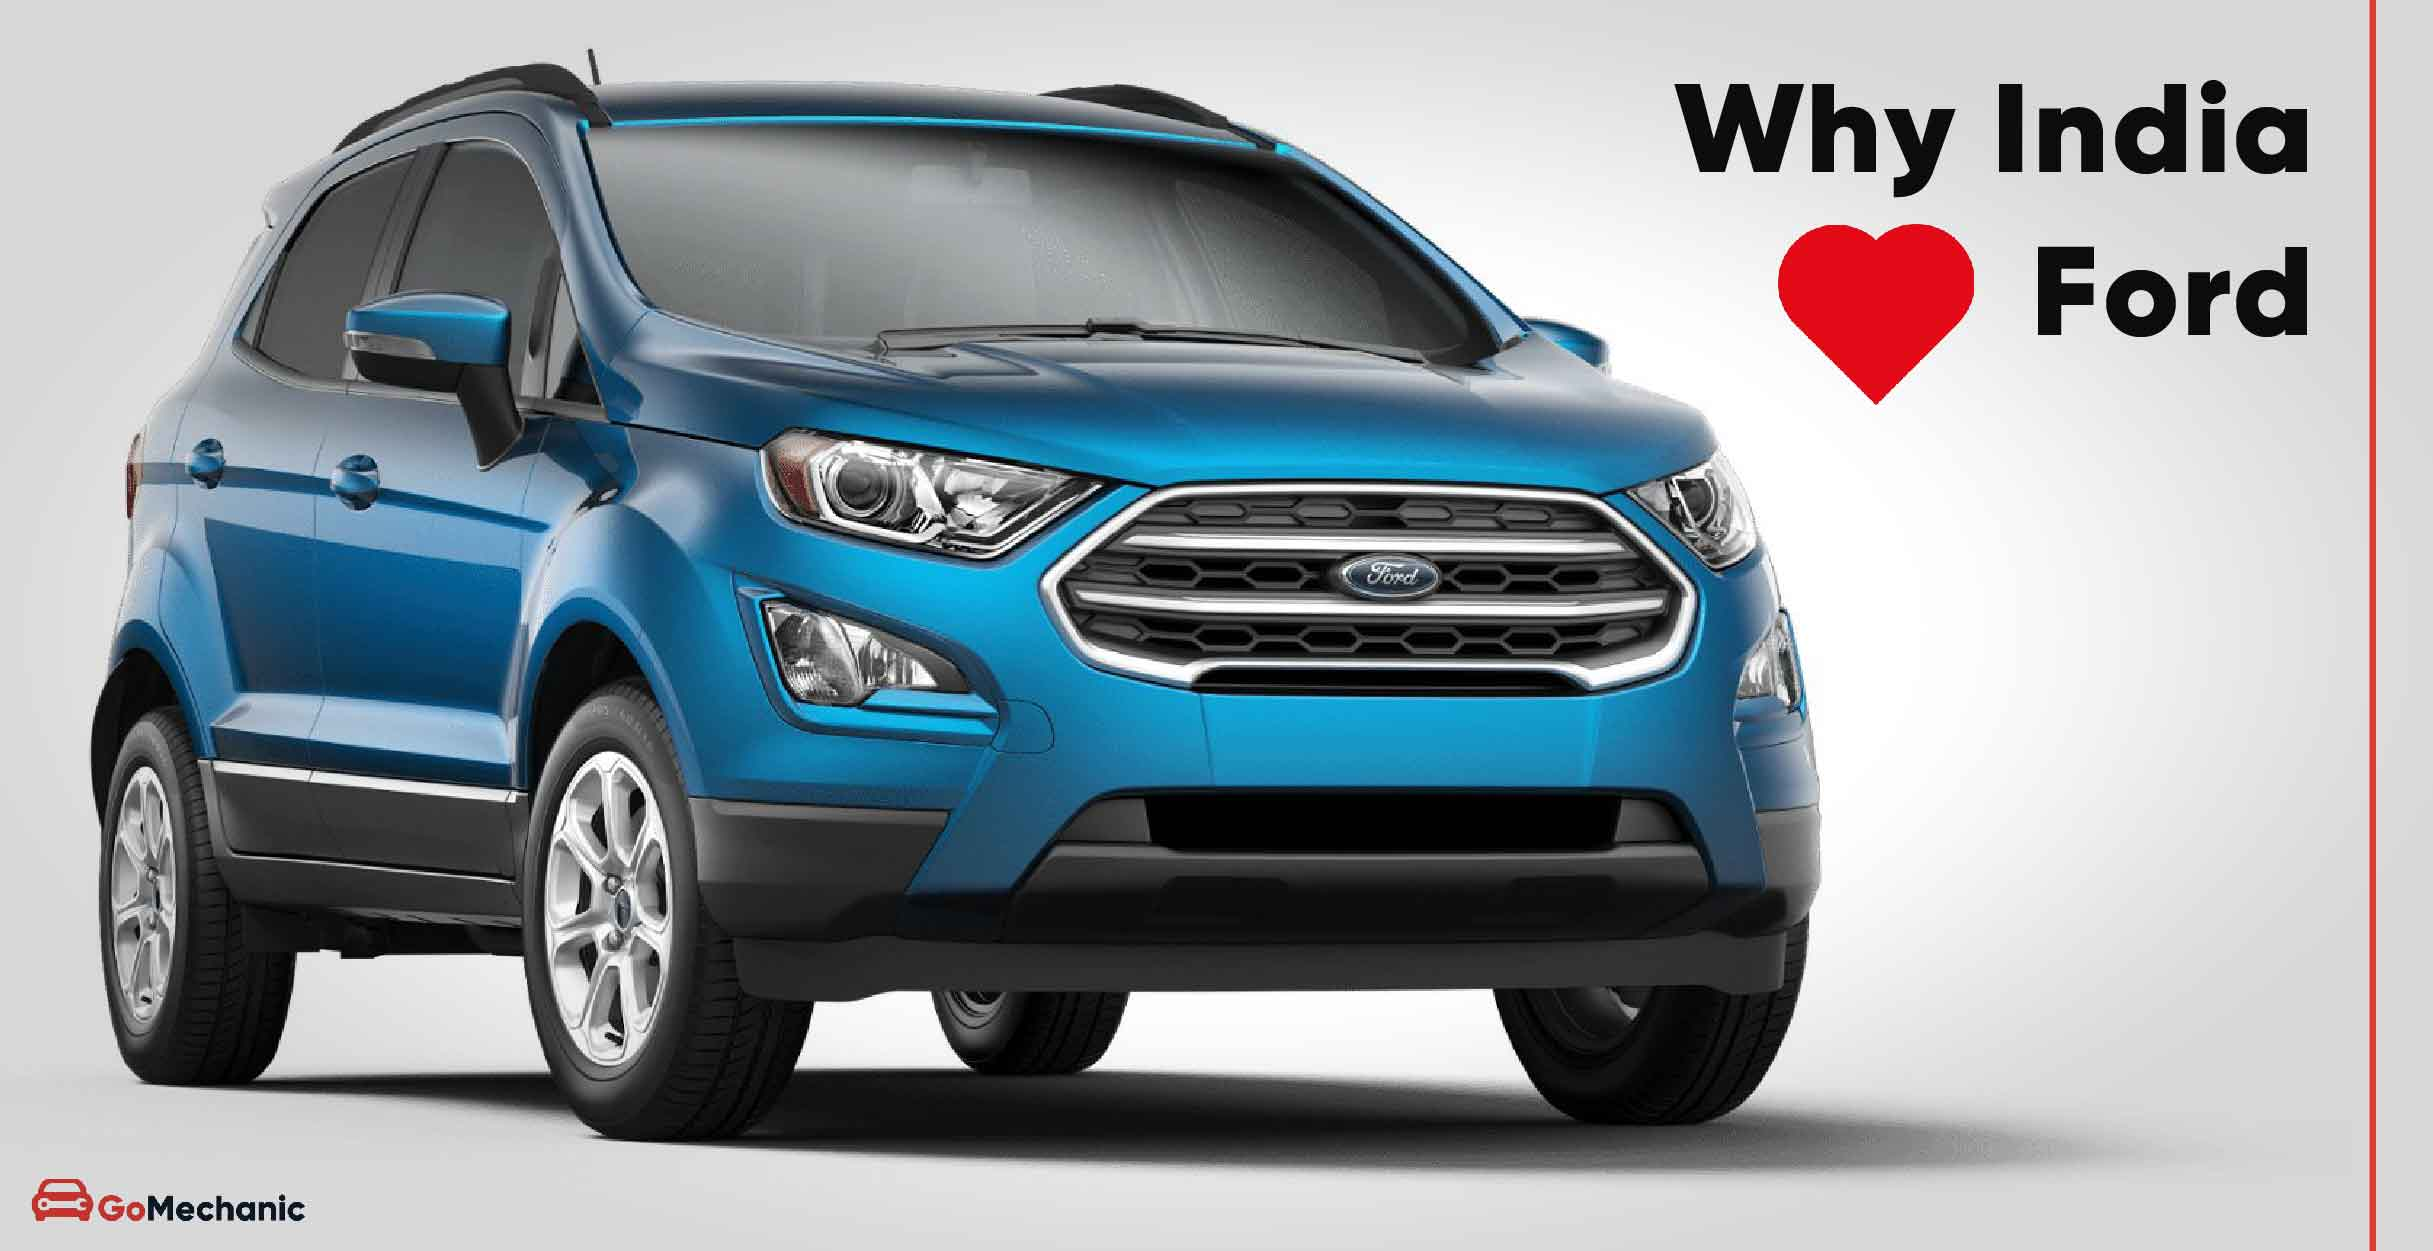 10 Reasons Why Indians Just Love Ford Cars